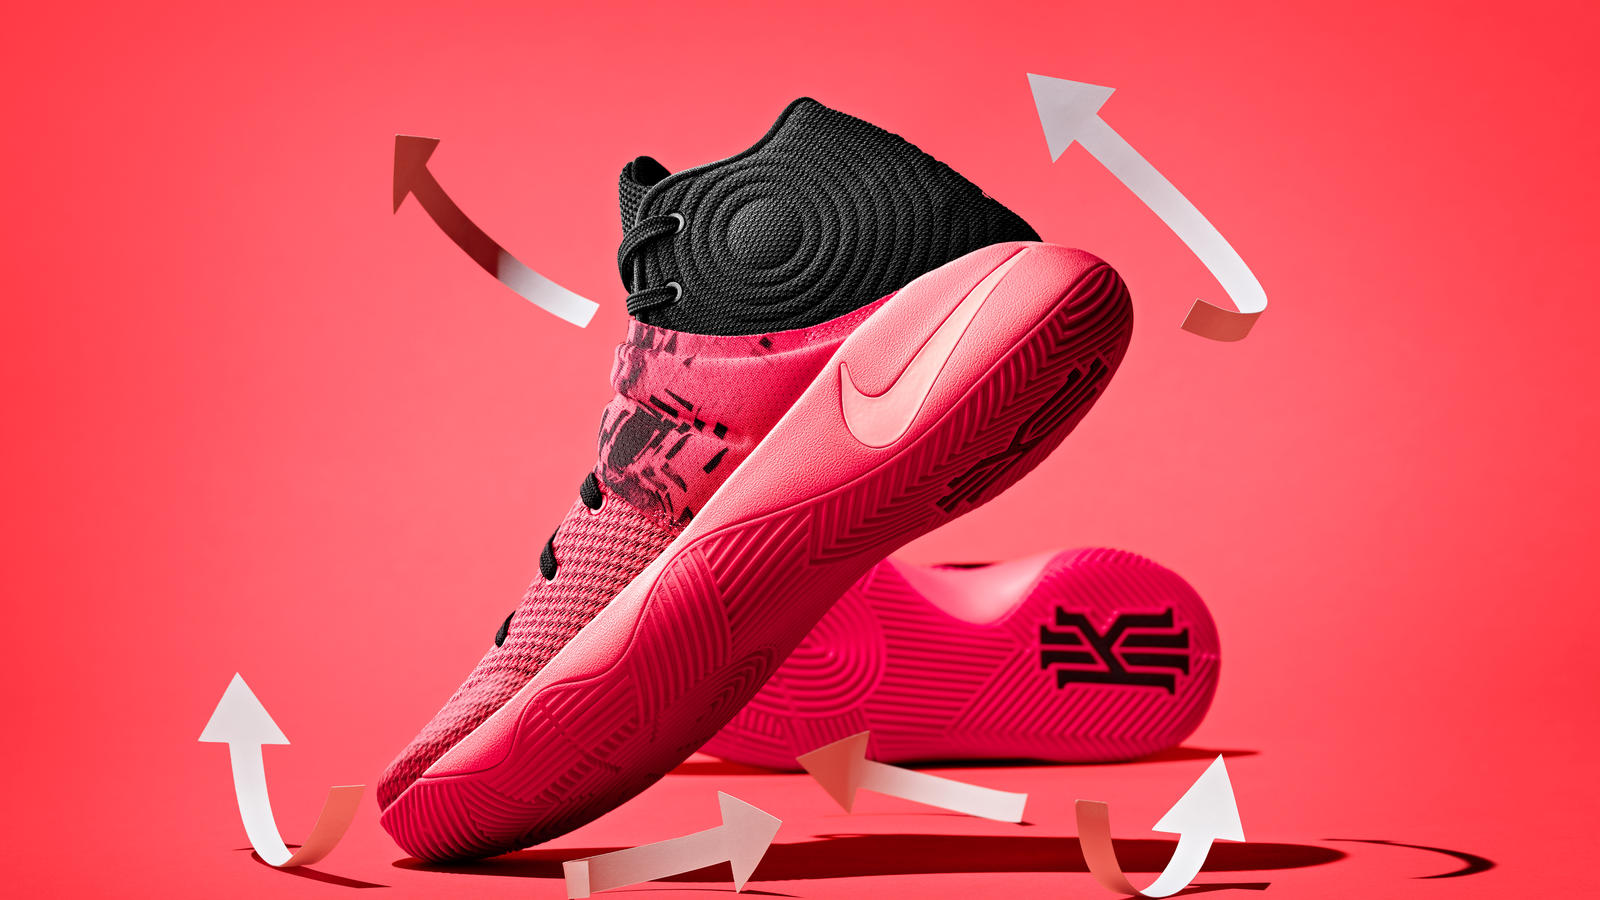 15-600_nike_kyrie_2_hero-01_hd_1600